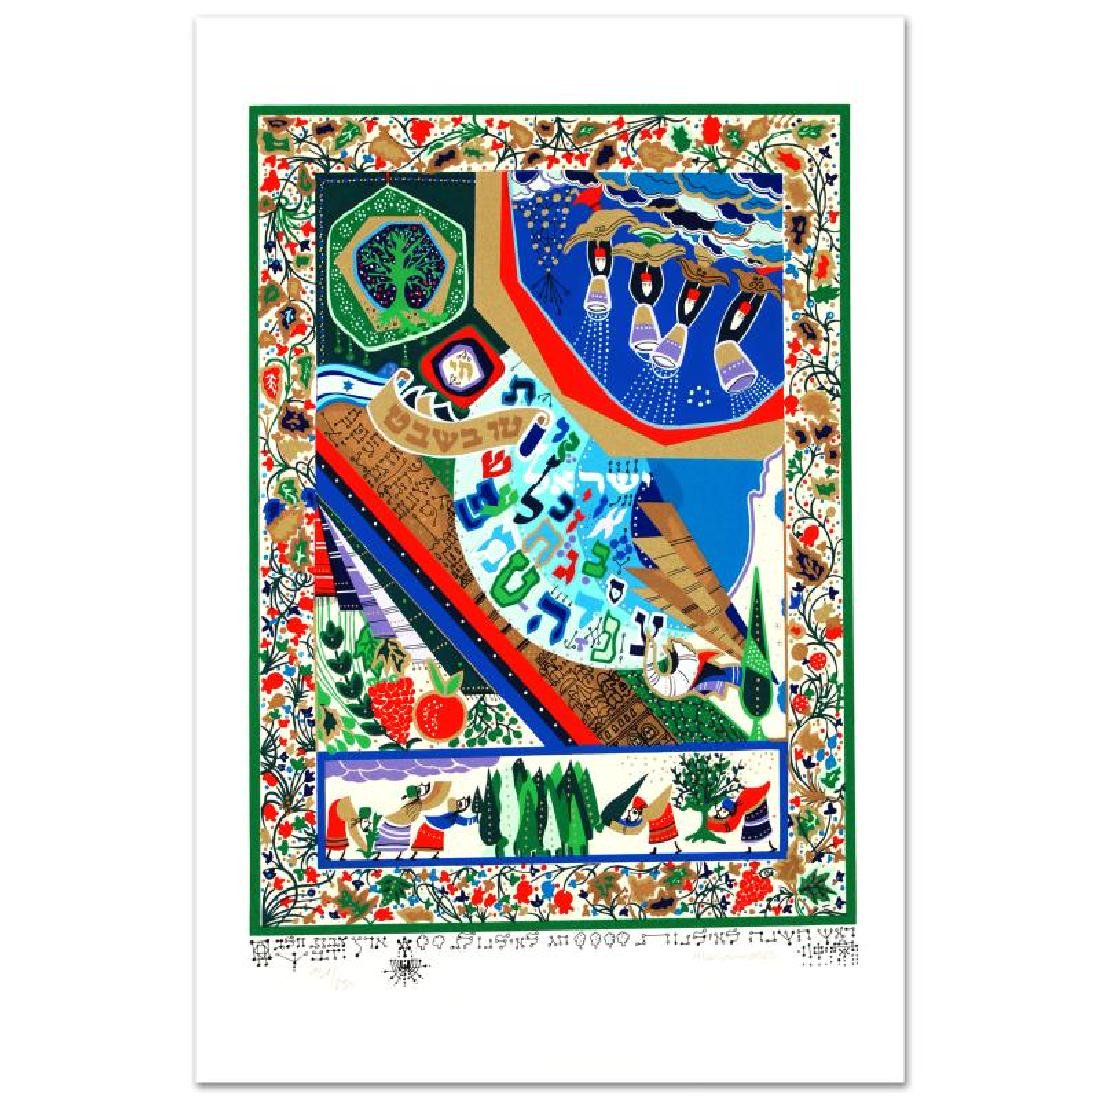 Tu B'Shvat Limited Edition Serigraph by the Talented